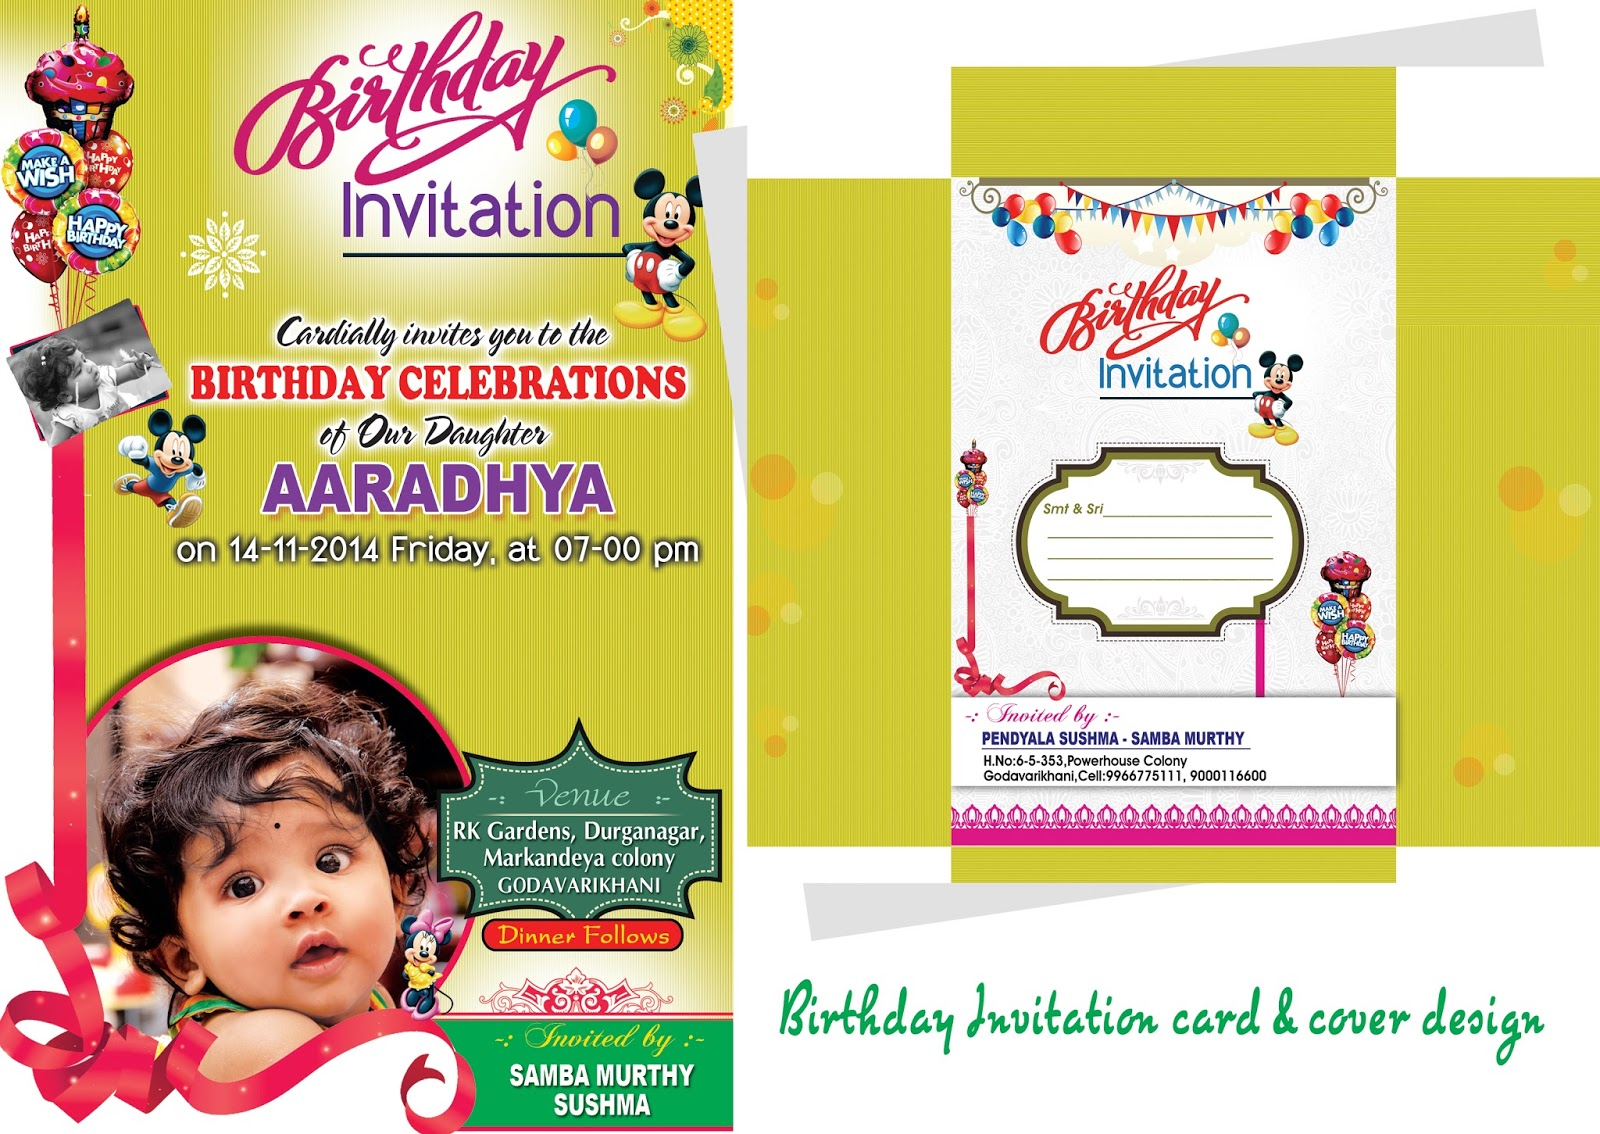 Birthday invitation card templates free download juve birthday invitation card templates free download birthday invitation ecards free download oyle kalakaari co birthday invitation card templates free stopboris Images